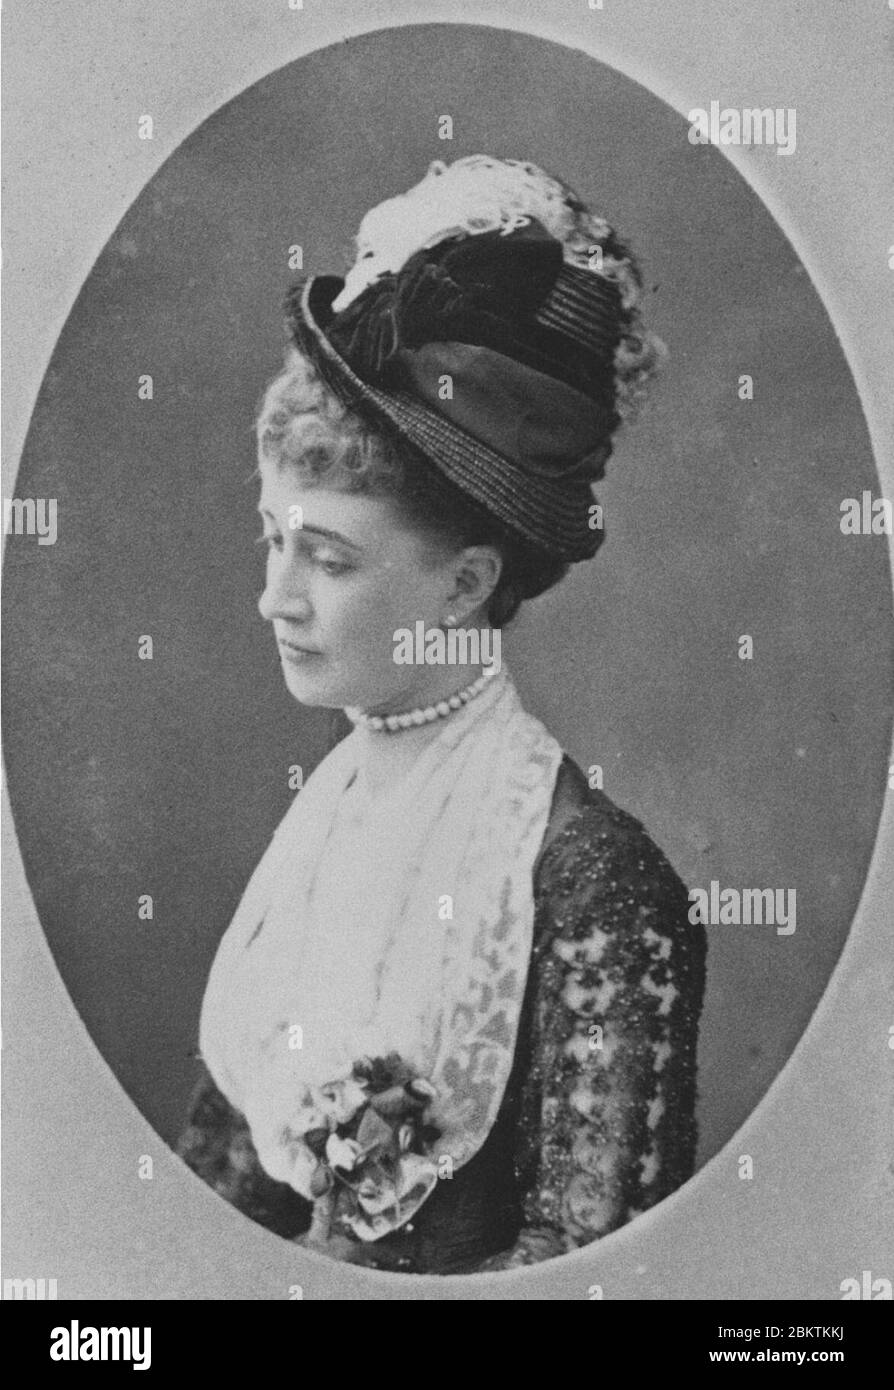 Hélène Standish (1847-1933) A. Stock Photo